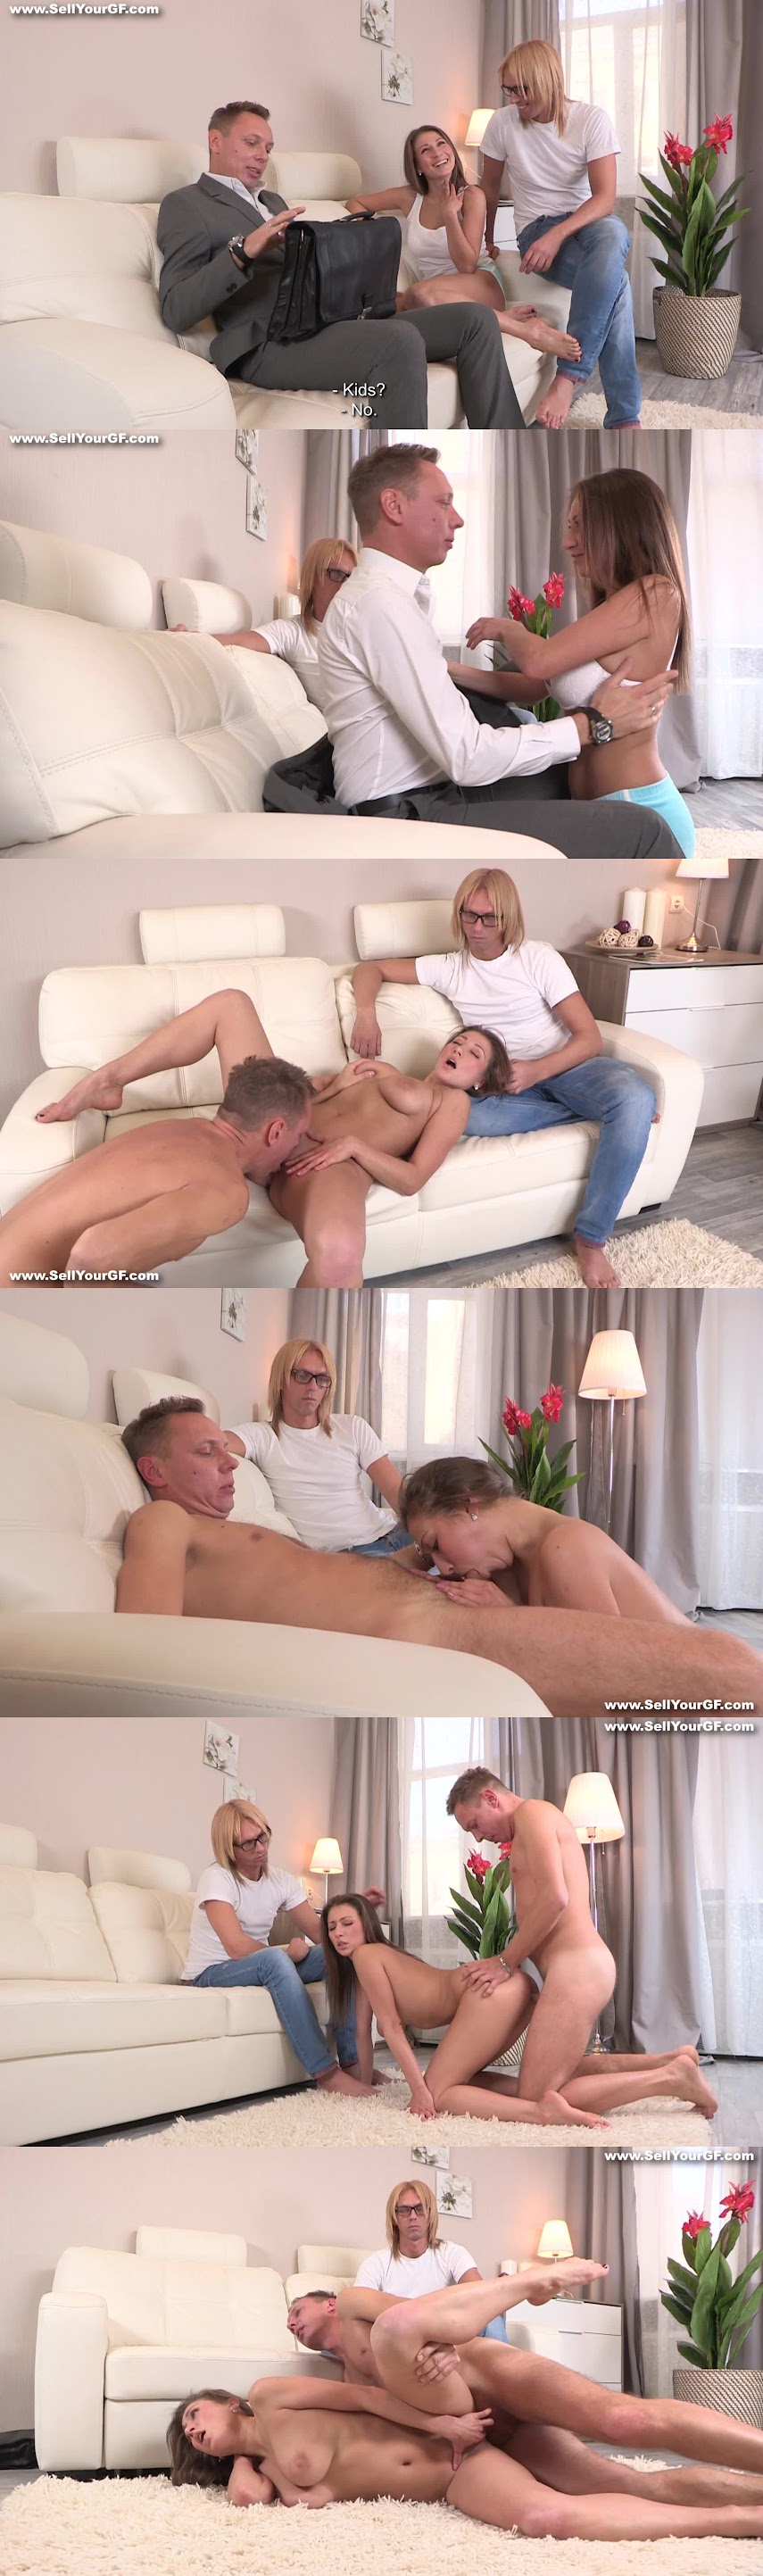 SellYourGF wsyg1038 My boss fucked my wife